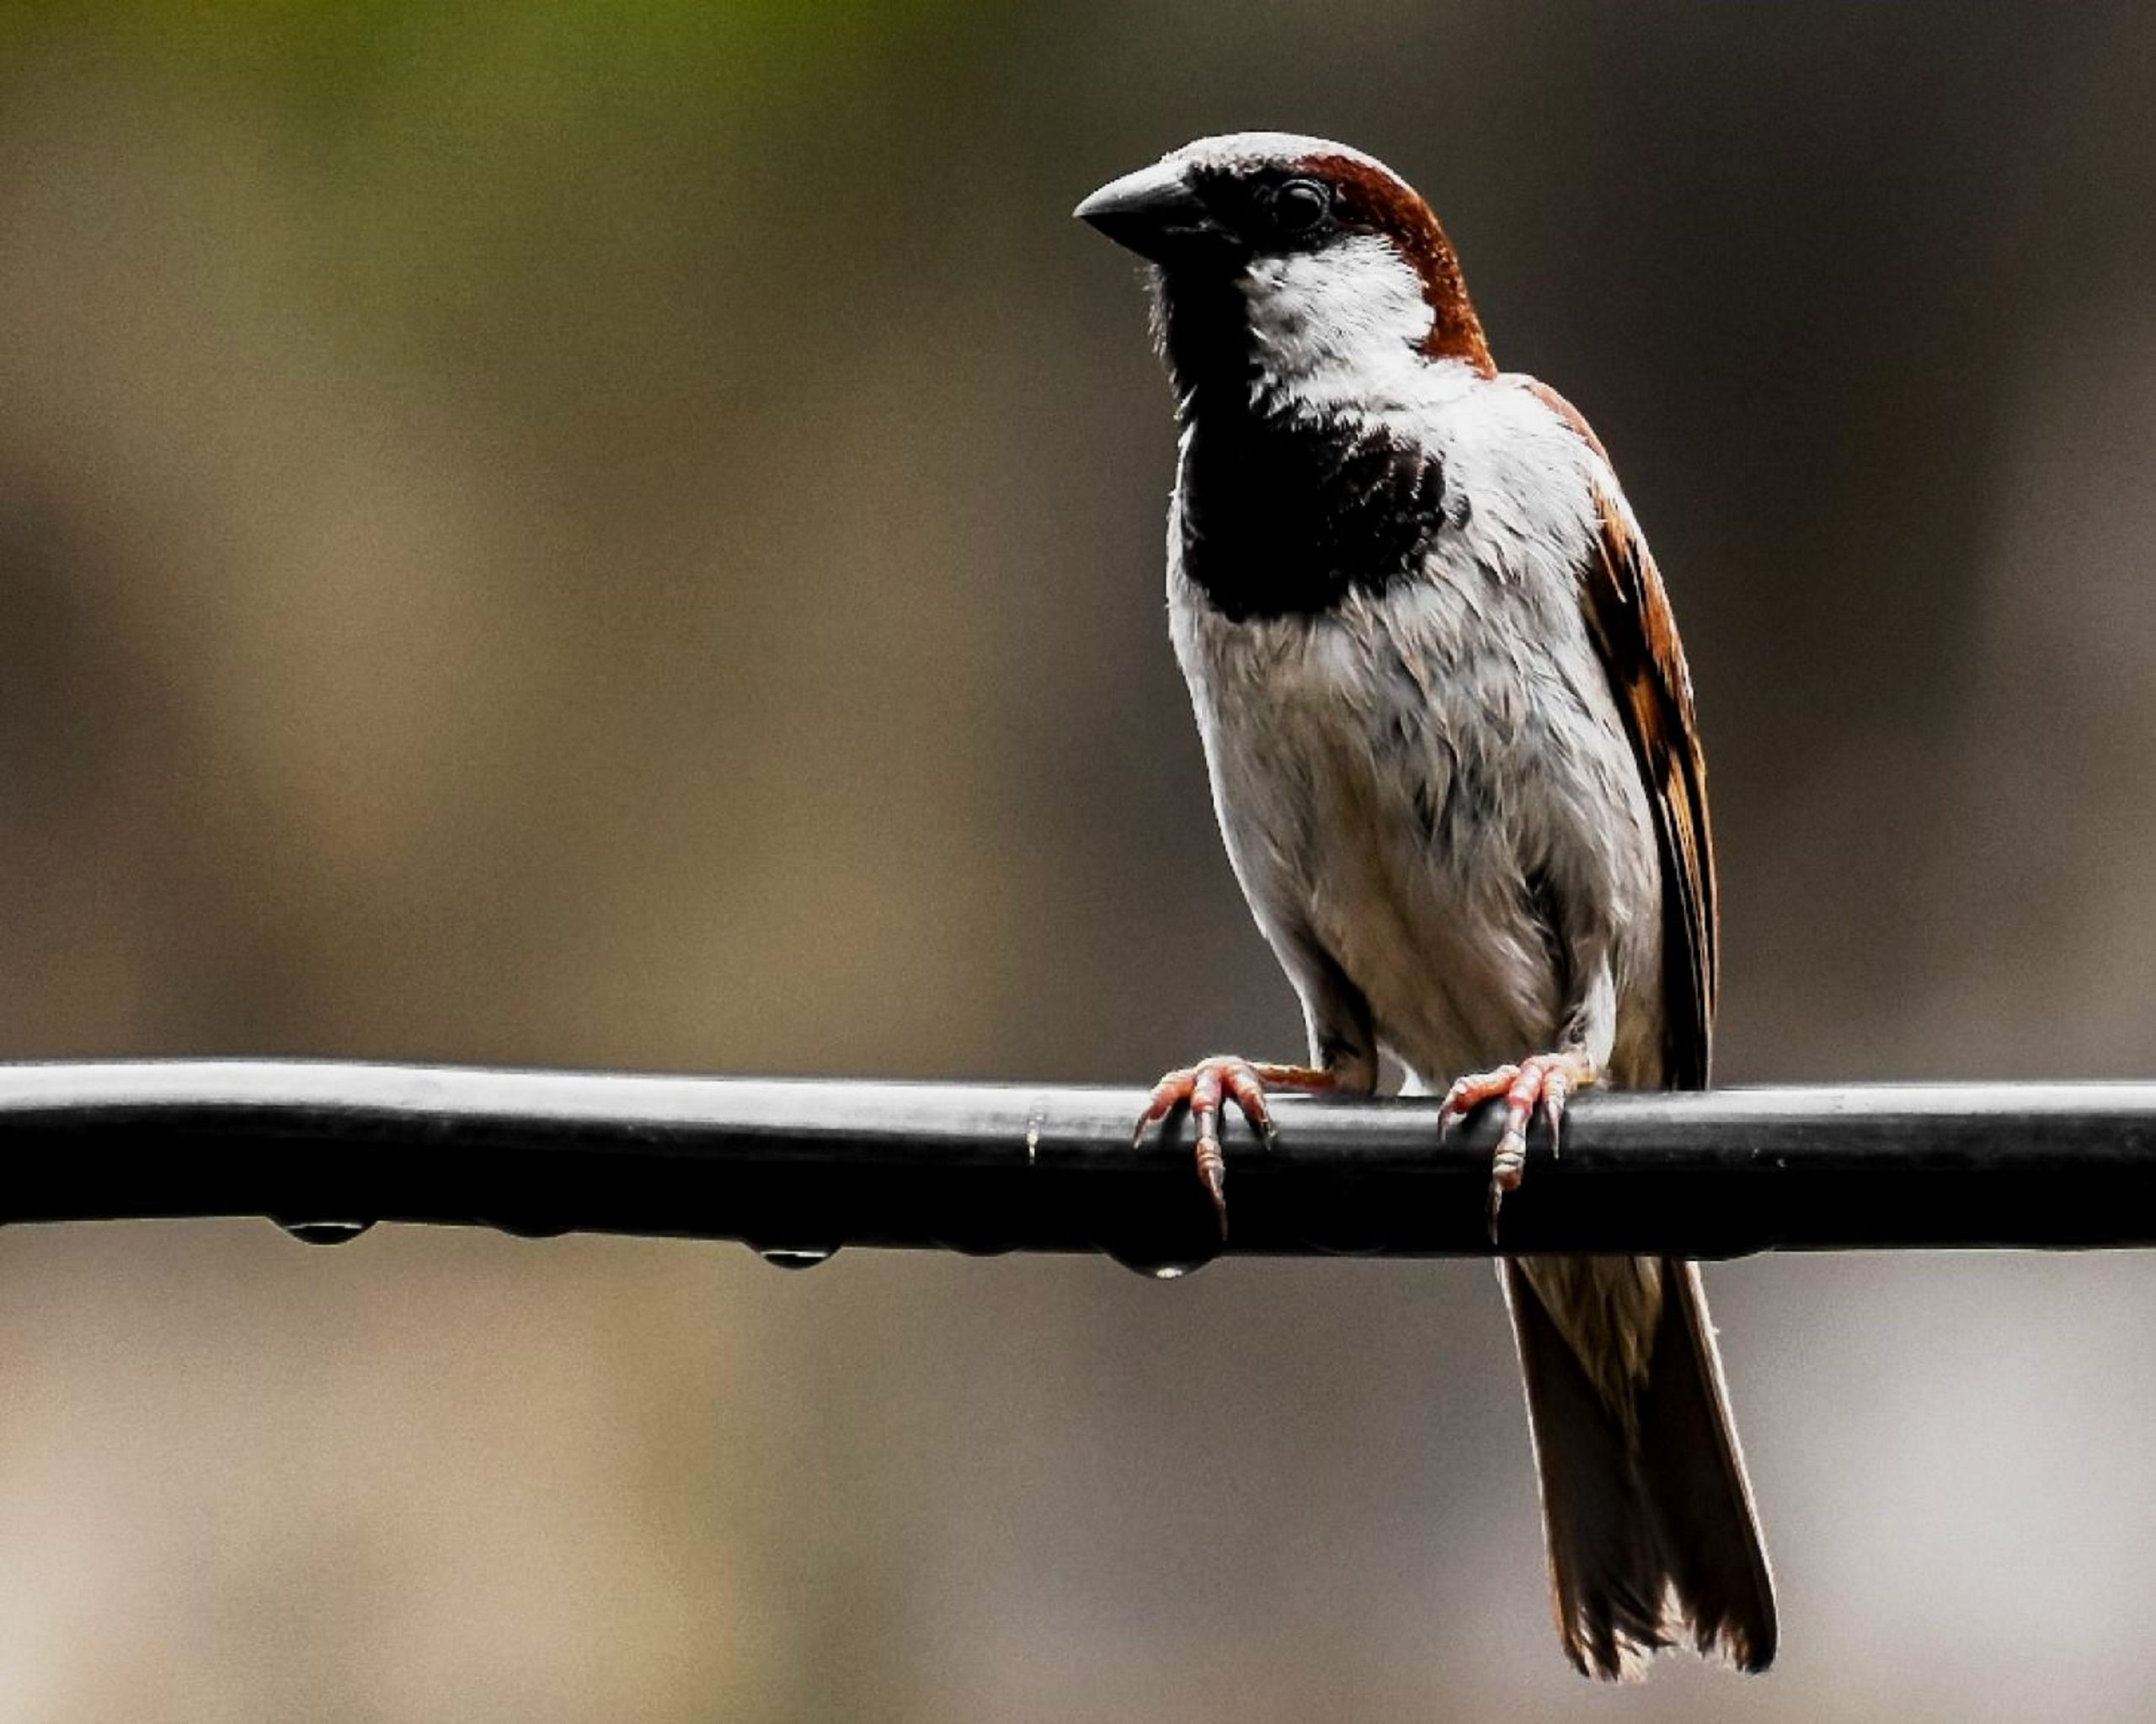 A sparrow on a rope